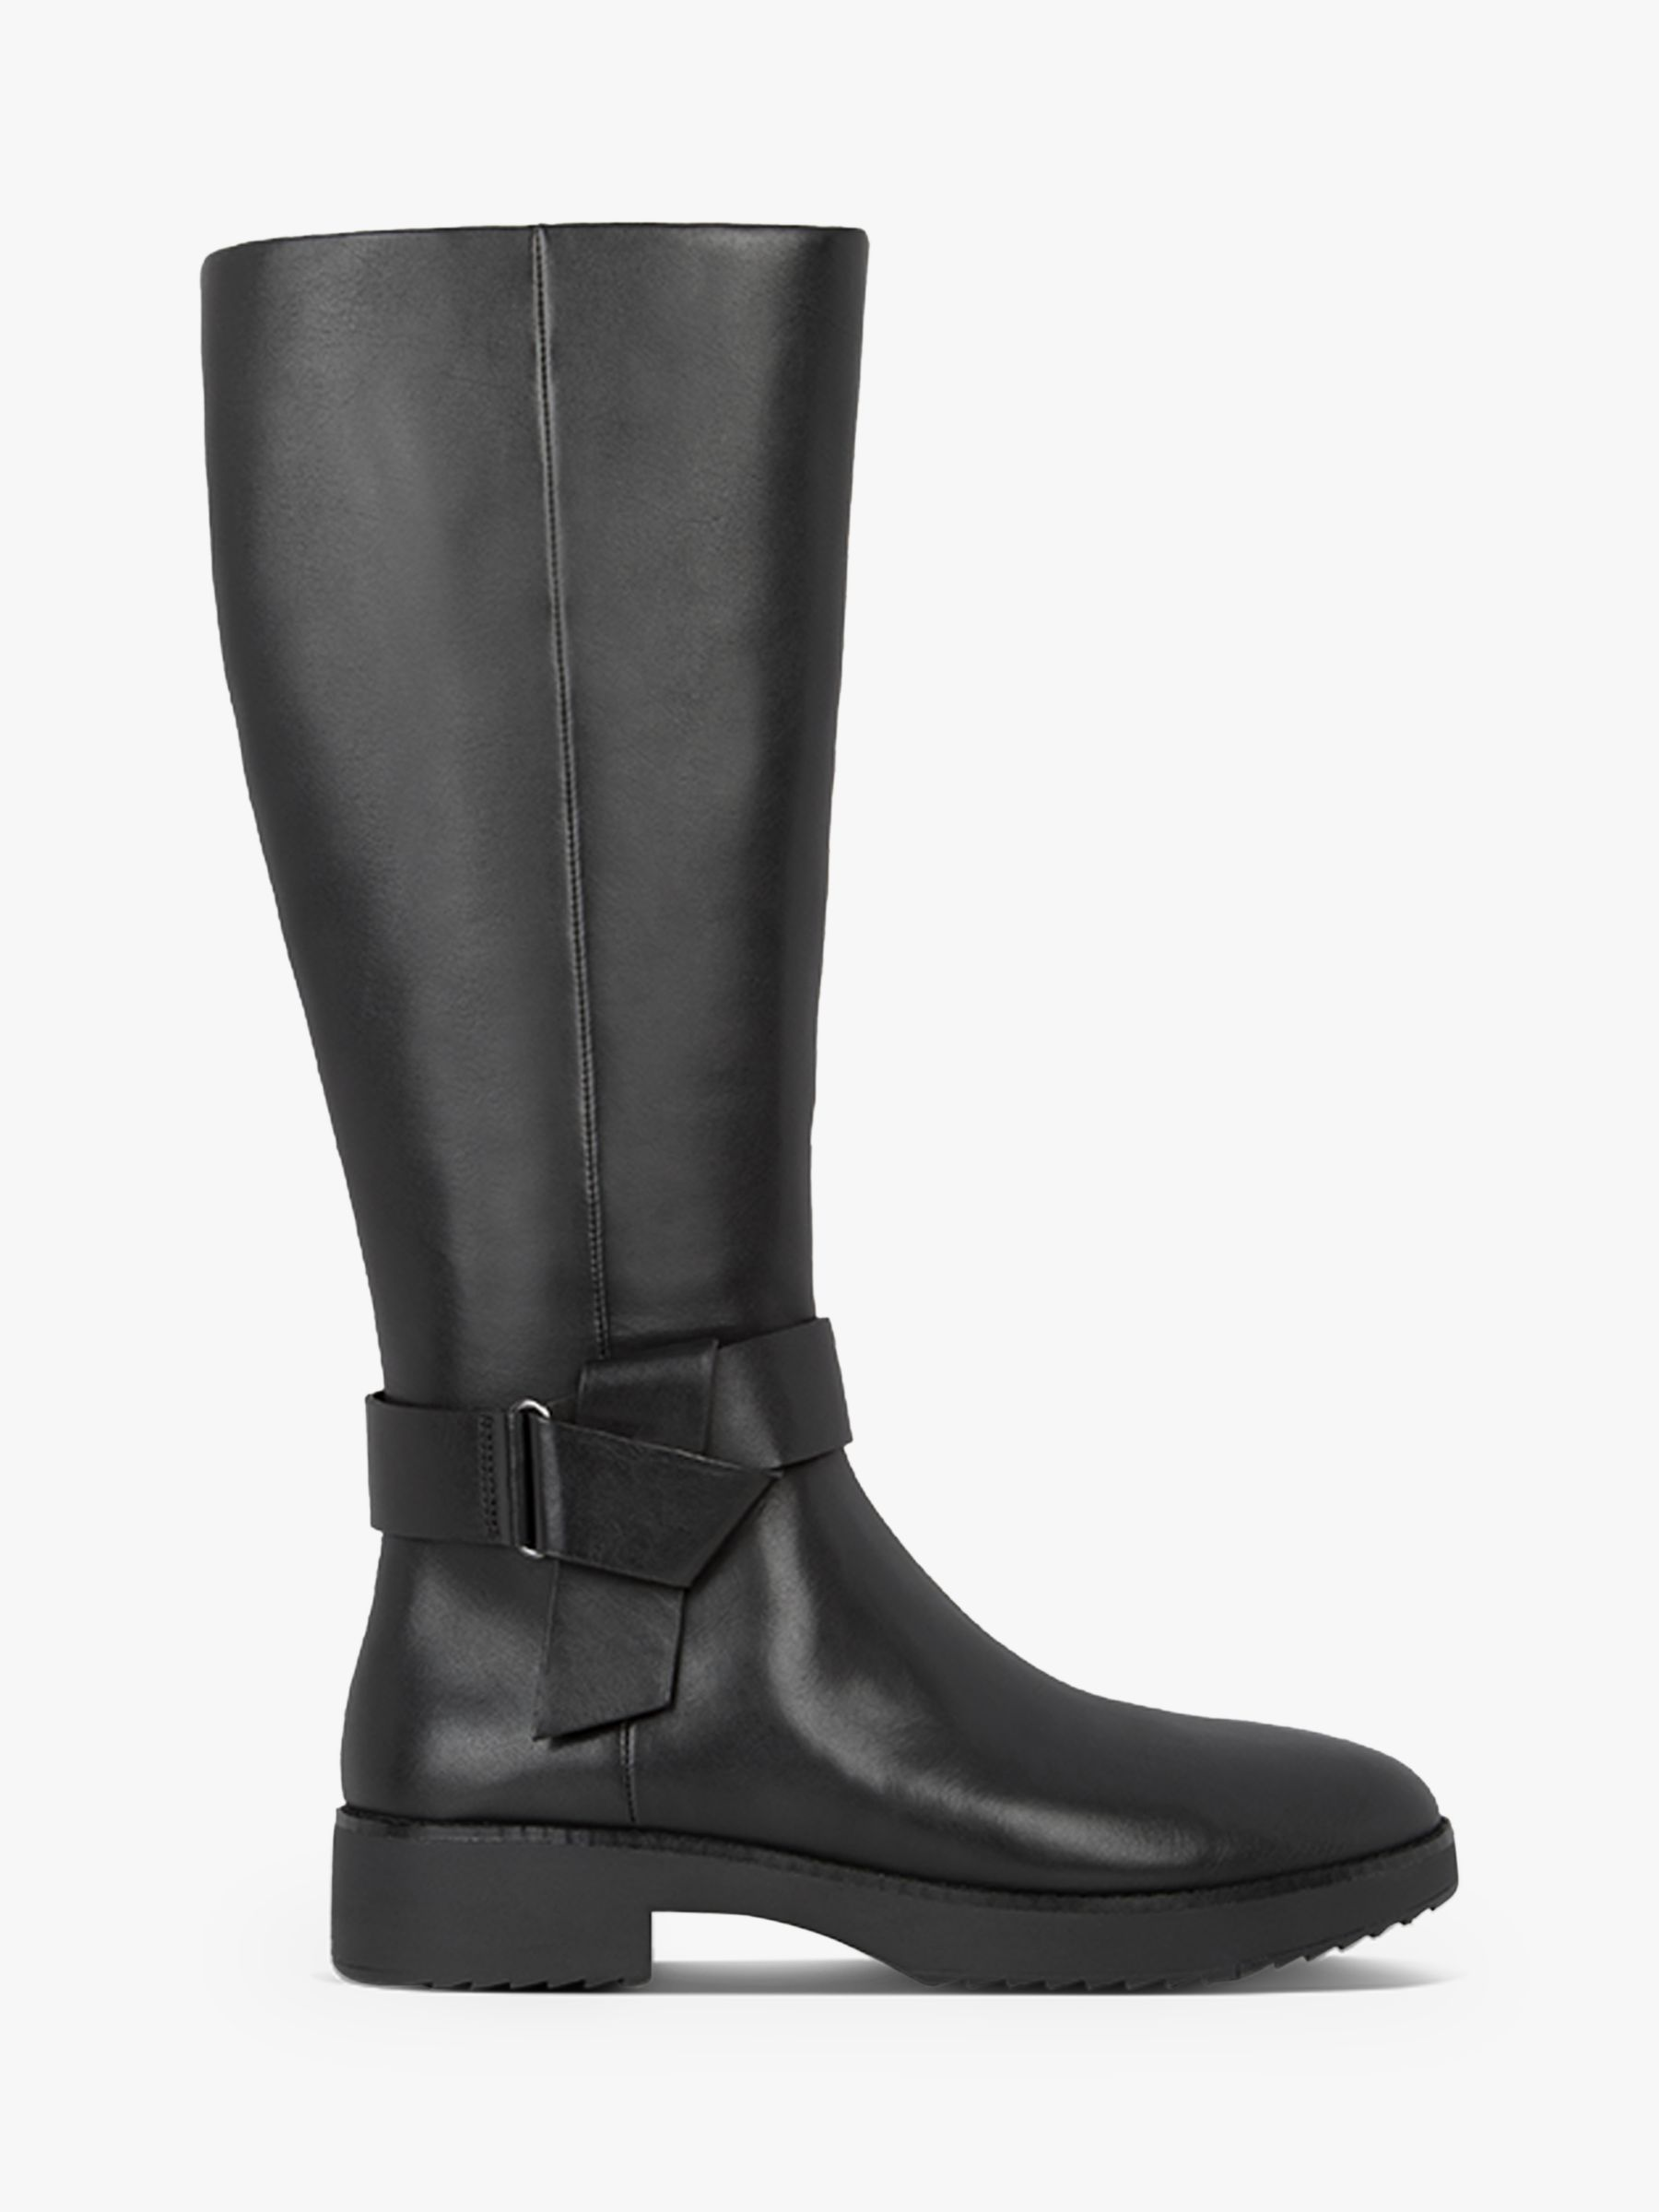 Fitflop FitFlop Knot Leather Calf Boots, Black